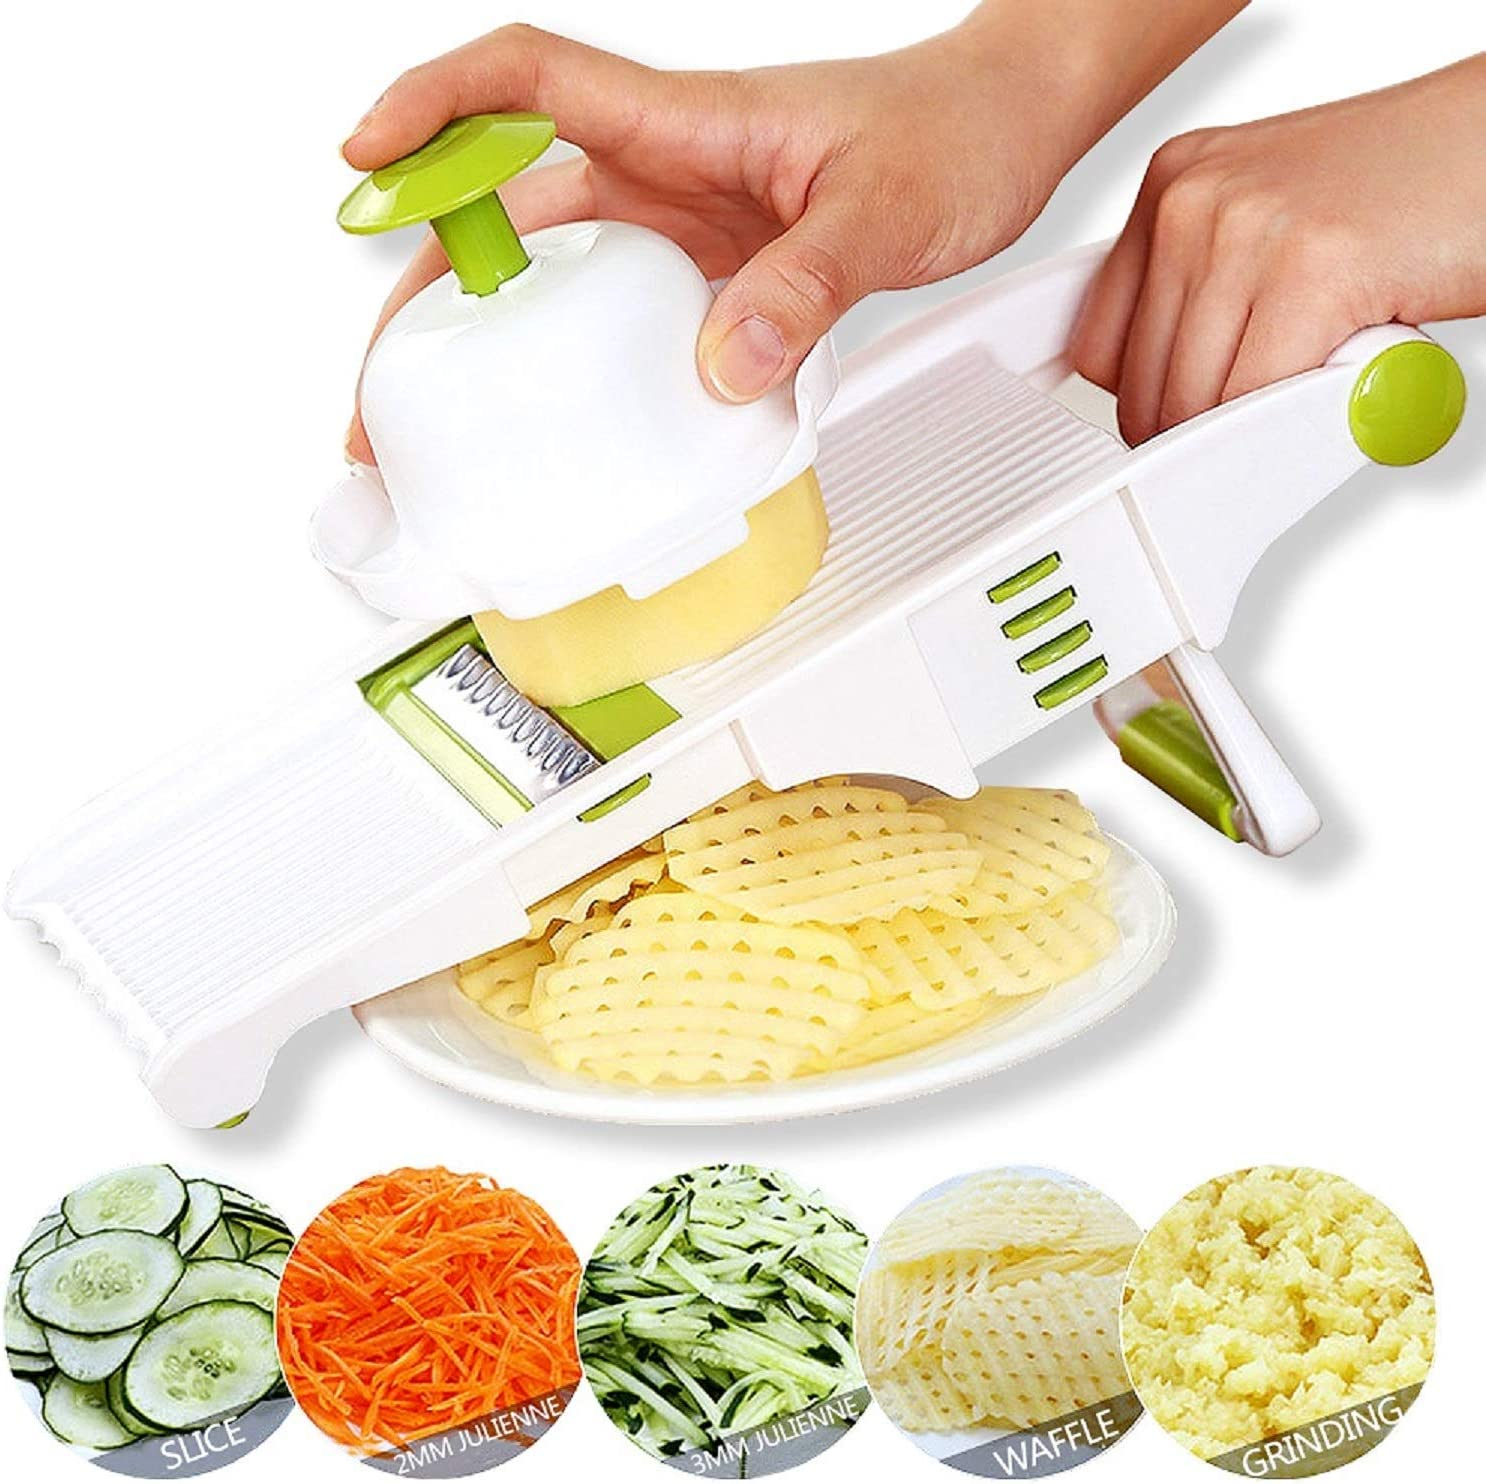 Amazon Com Gprome Mandoline Slicer Vegetable Mandolin Fruit Zucchini Slicer French Fry Cutter Food Waffle Julienne Grater Sharp Stainless Steel Blades Kitchen Dining